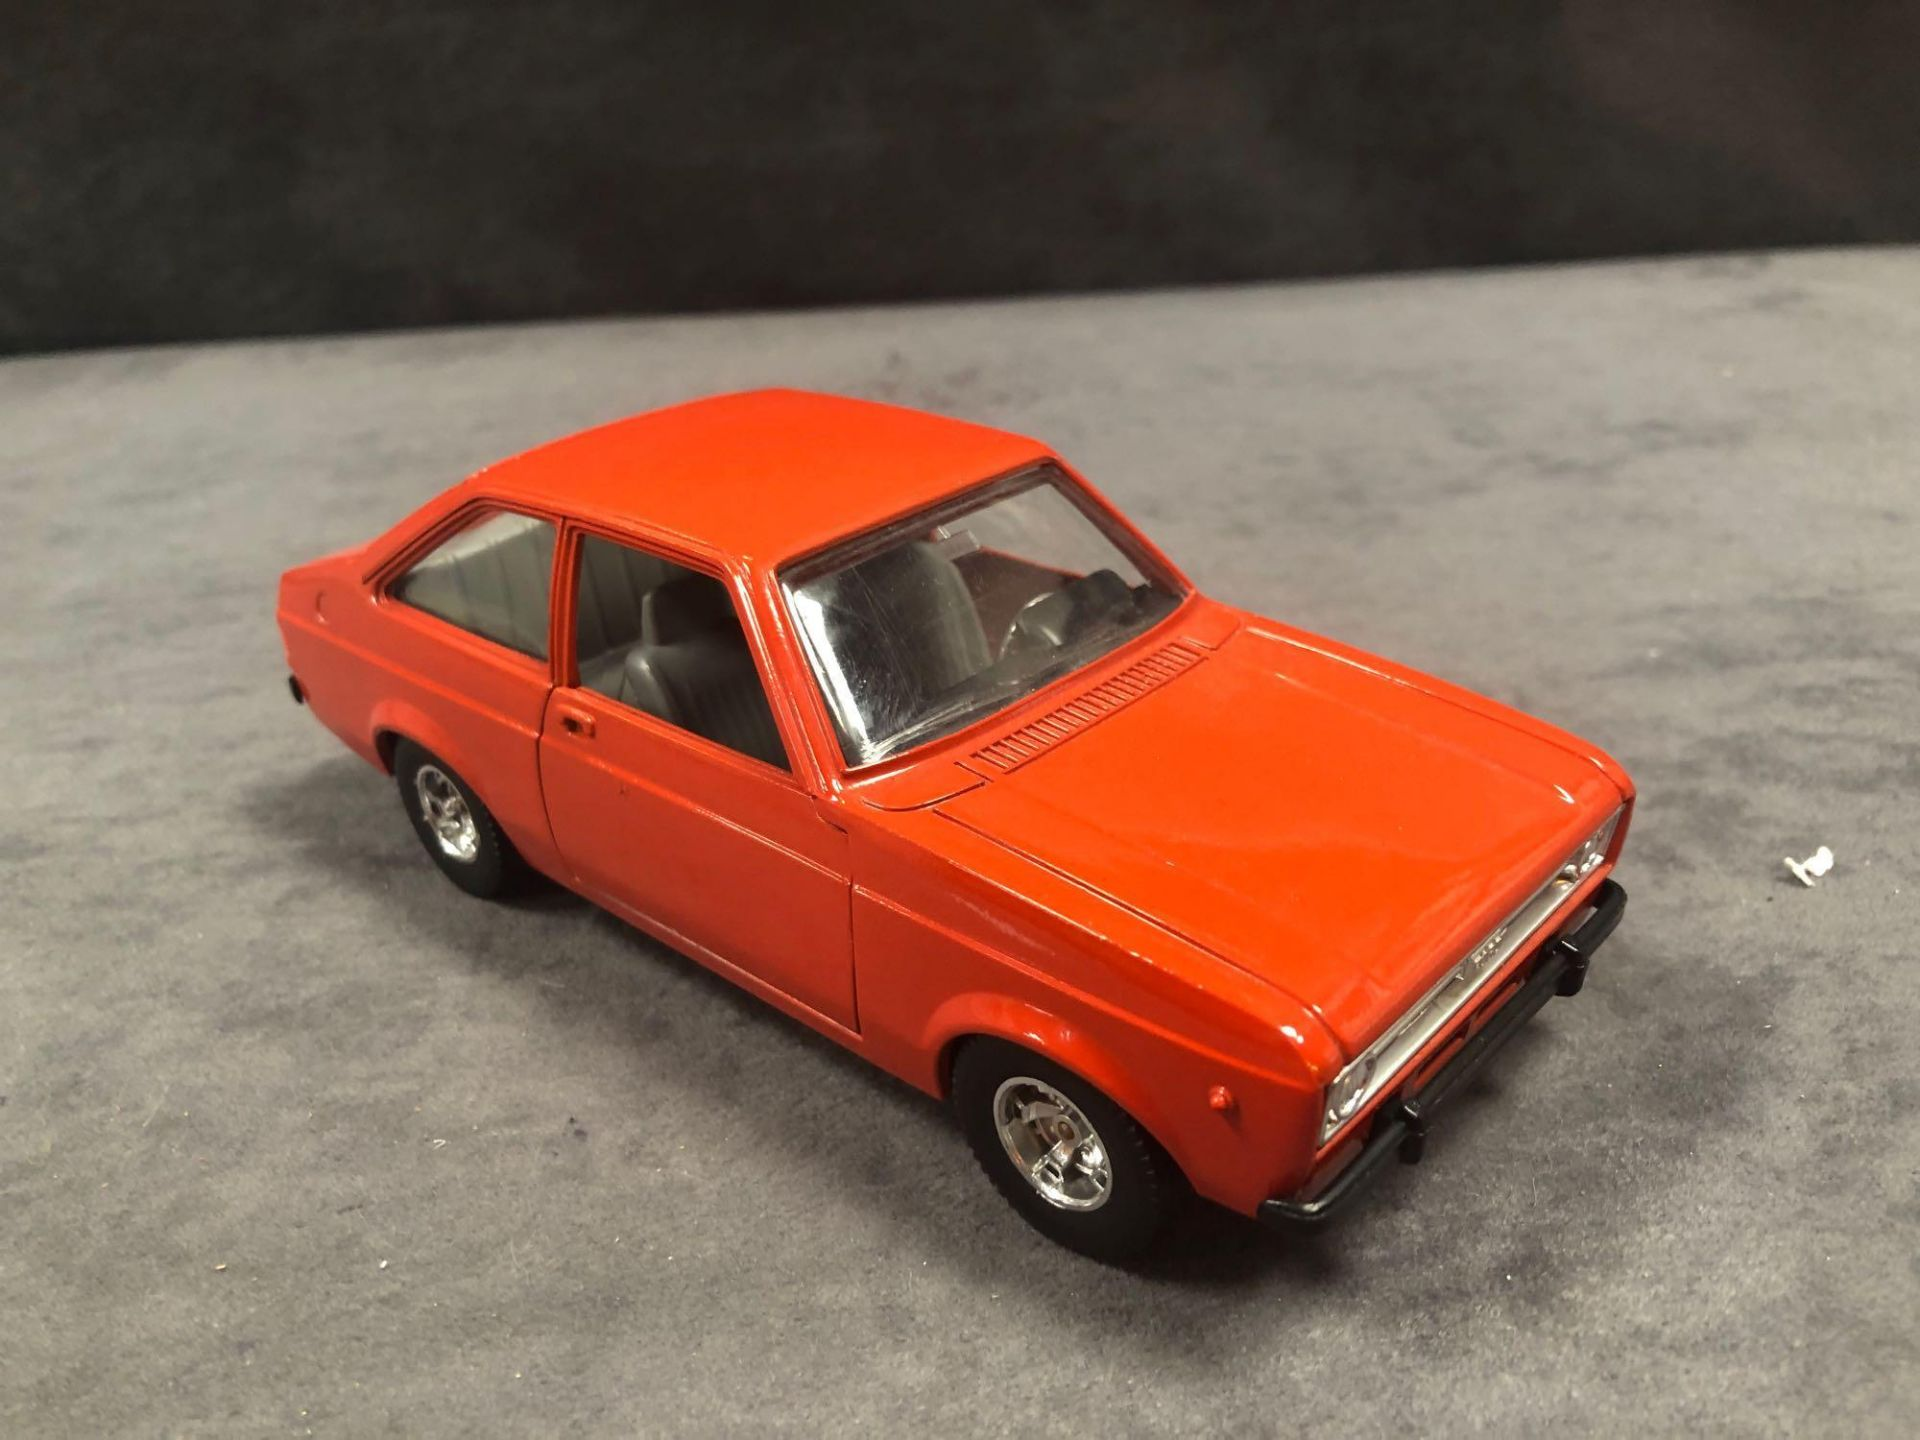 Bburago Ford Diecast Escort 1100L In Orange Red No Box - Image 2 of 3